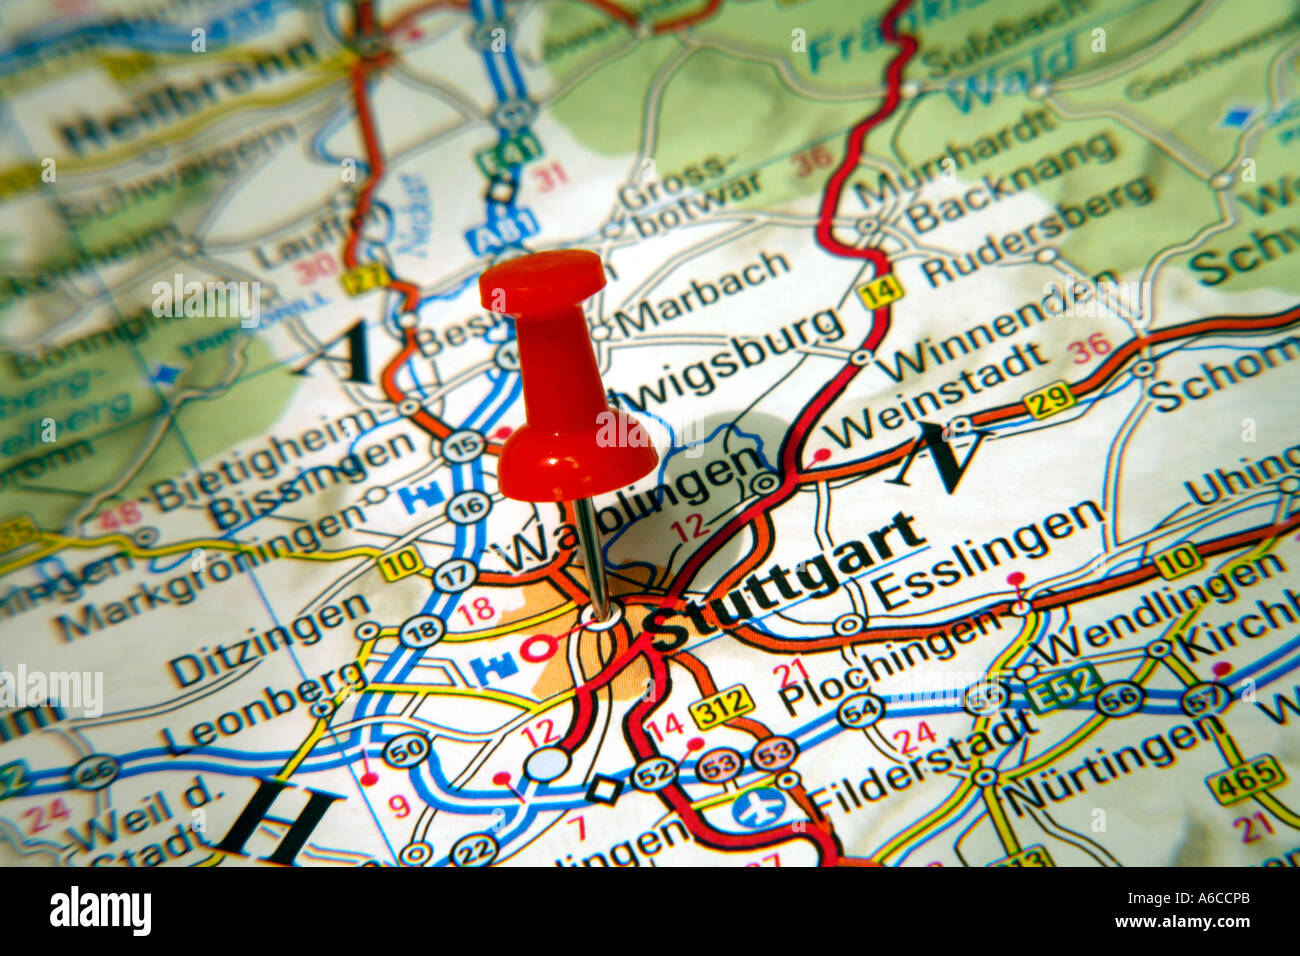 Map Pin Pointing To Stuttgart Germany On A Road Map Stock - Germany map stuttgart